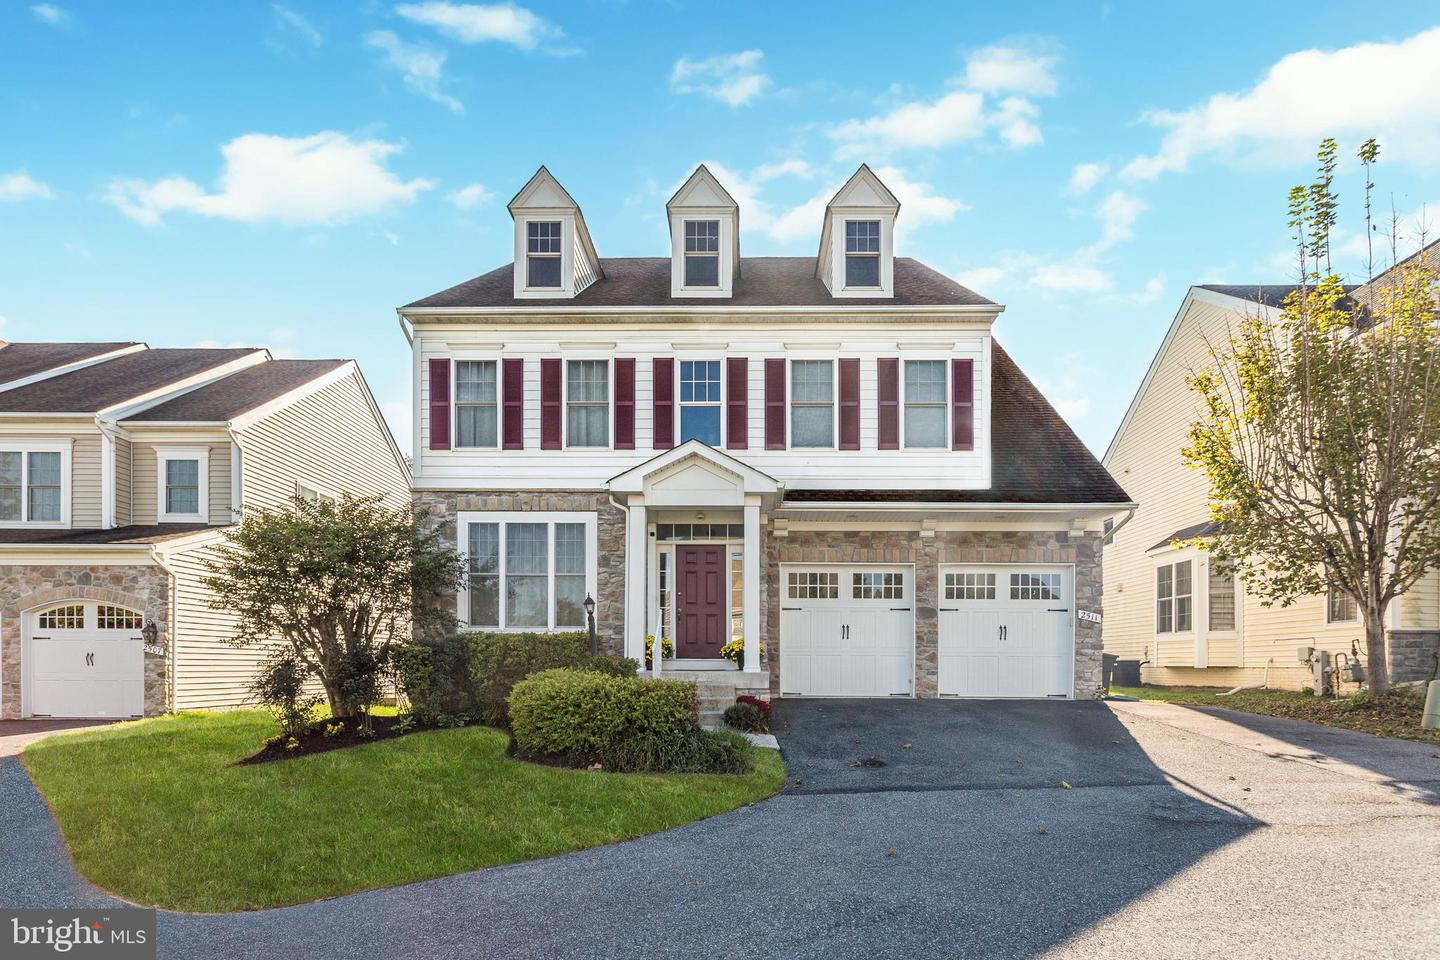 2511 HOLLIFIELD LN, ELLICOTT CITY, Maryland 21043, 4 Bedrooms Bedrooms, ,4 BathroomsBathrooms,Single Family,For Sale,2511 HOLLIFIELD LN,MDHW292114